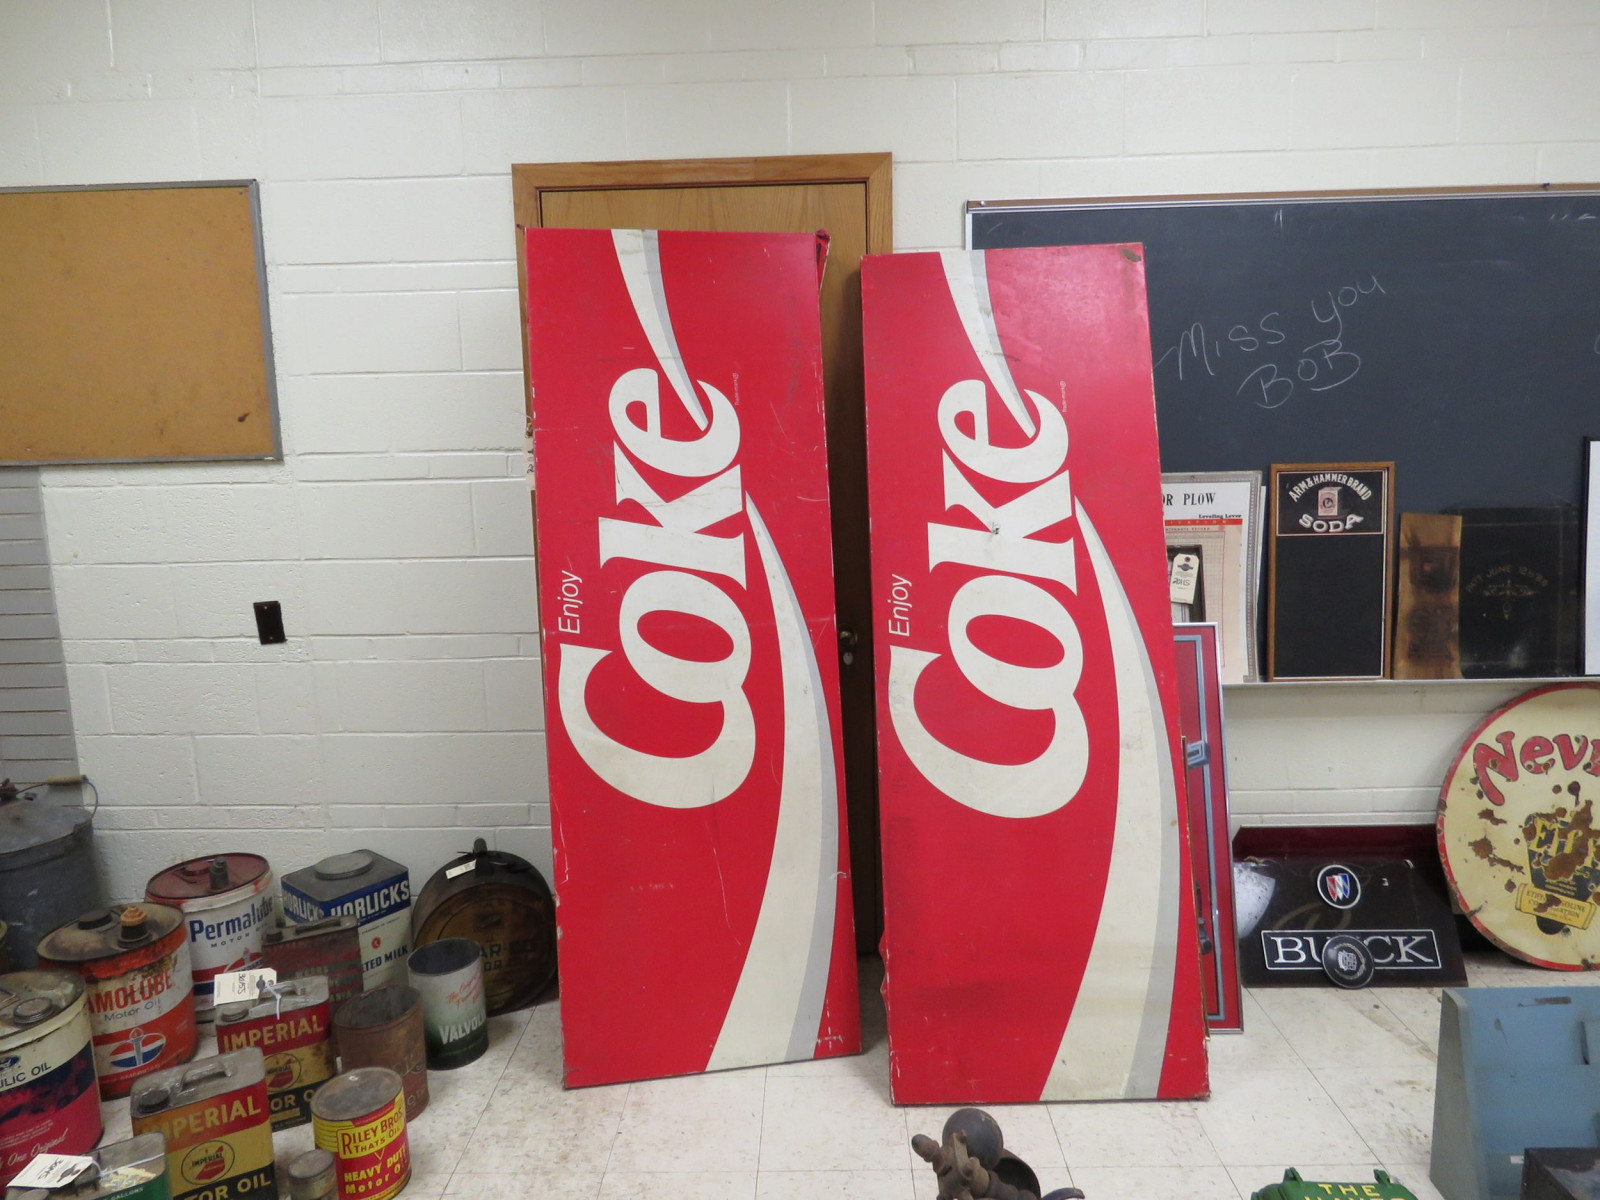 2 Large Fiberglass Coca Cola Signs - Image 1